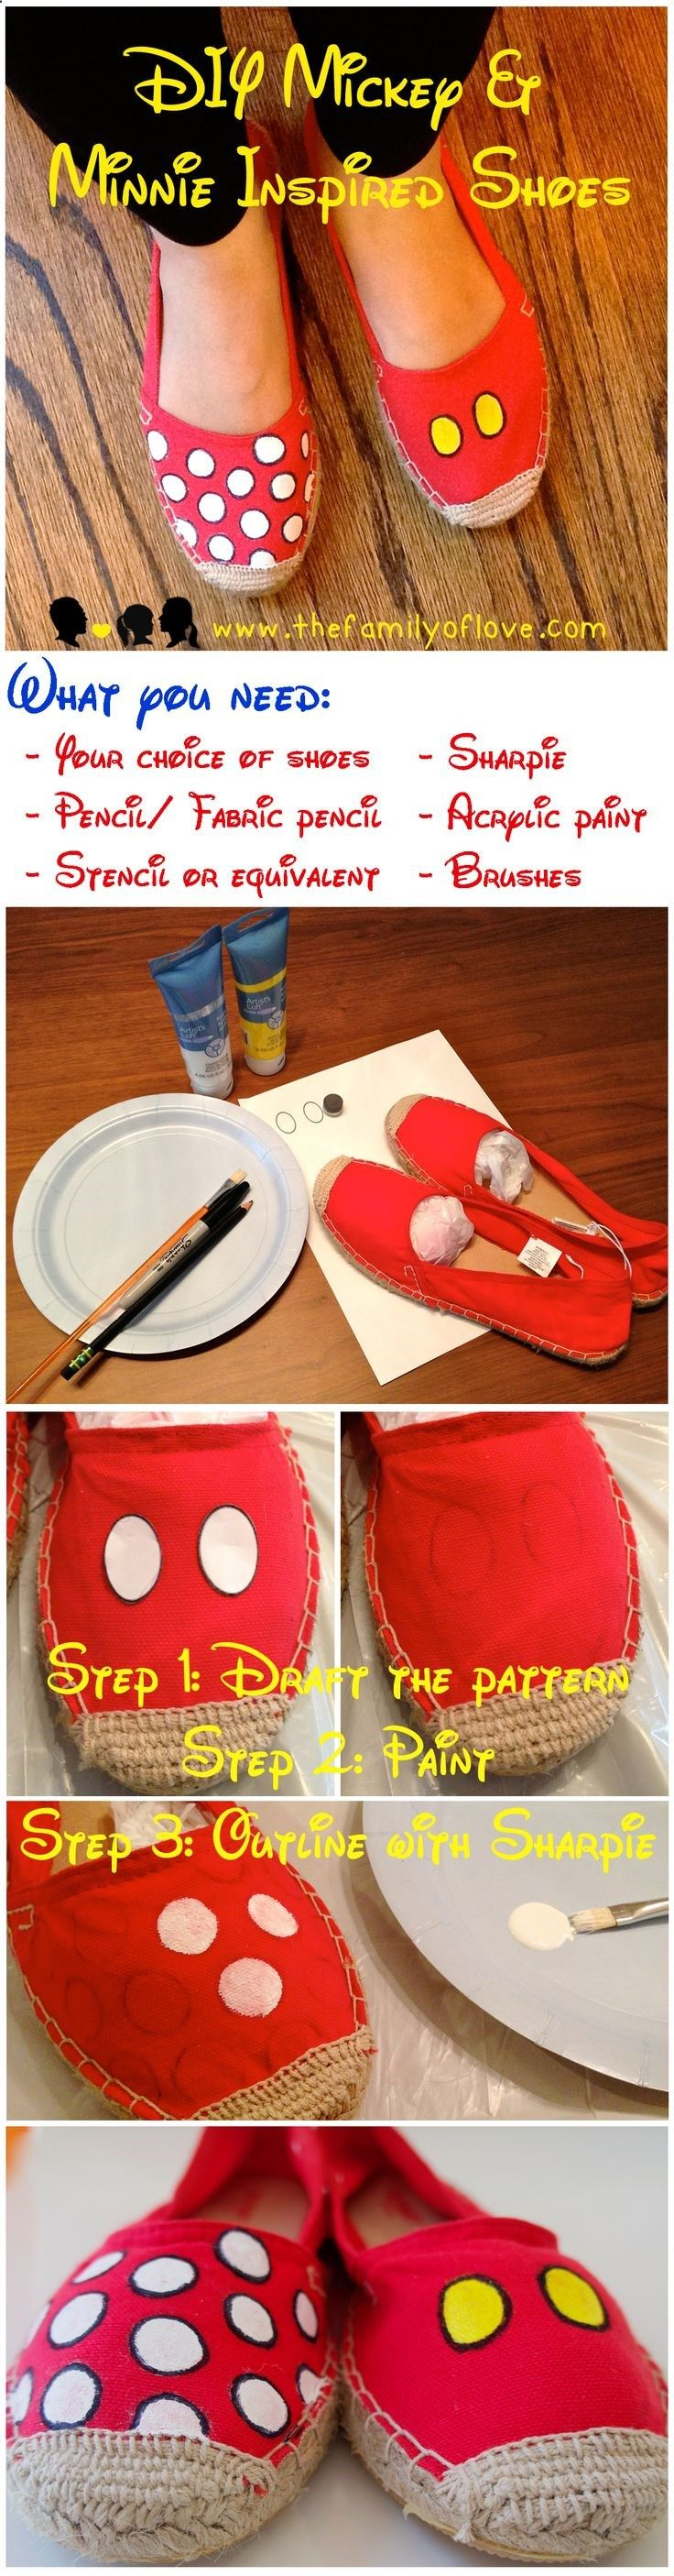 DIY (Tutorial) Minnie Mouse  Mickey Mouse Shoes/ Toms- Disney Trip/ Disney Cruise/ Disneyland/ Disney World Family Outfits